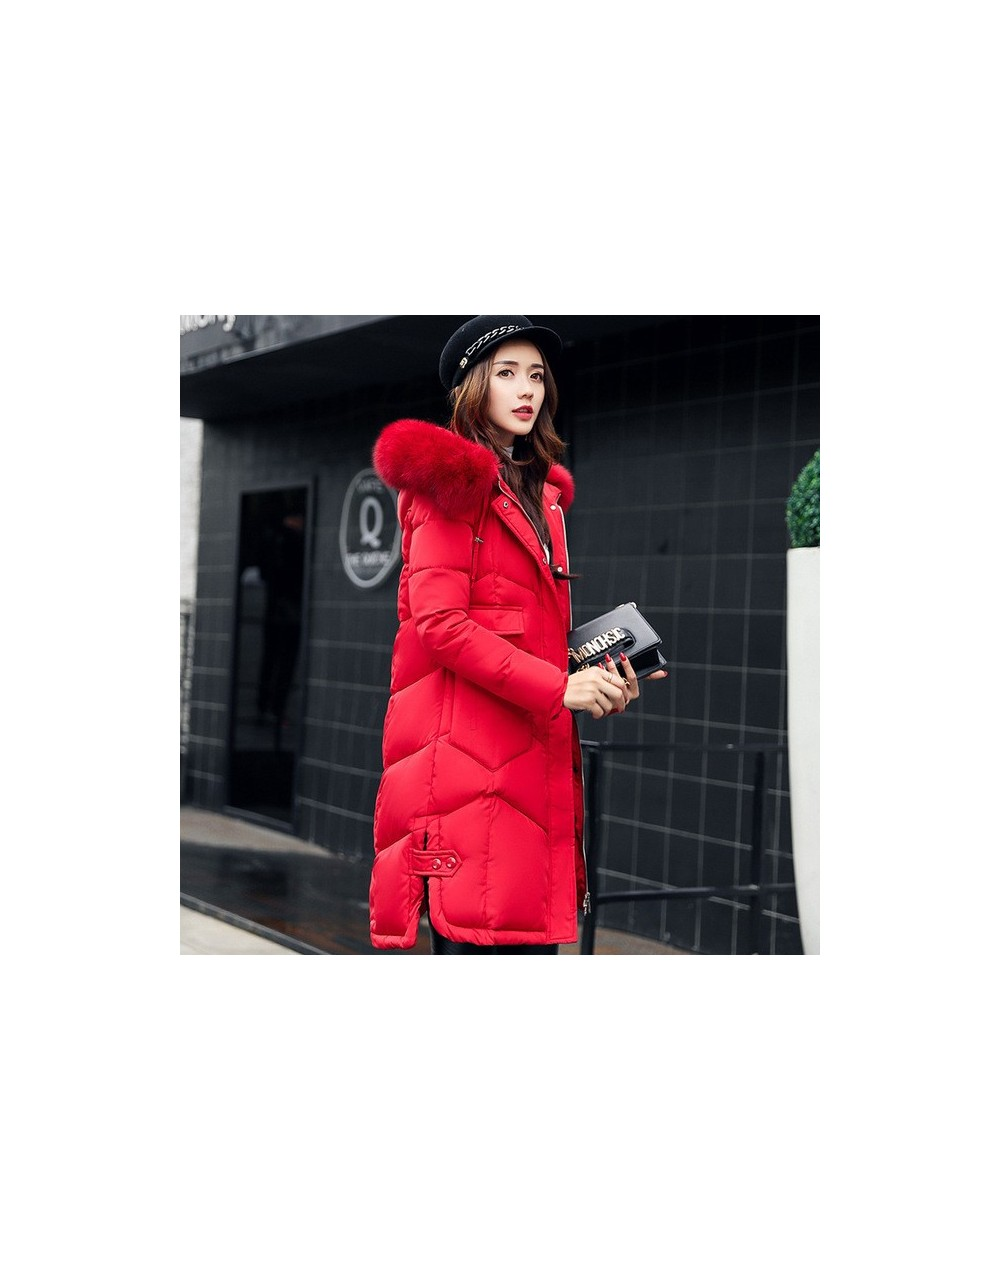 Plus Size Large Fur Collar Hooded Winter Parka Female Cotton Casual Fashion Coat Outerwear Red Padded Jackets Thickening TT2...